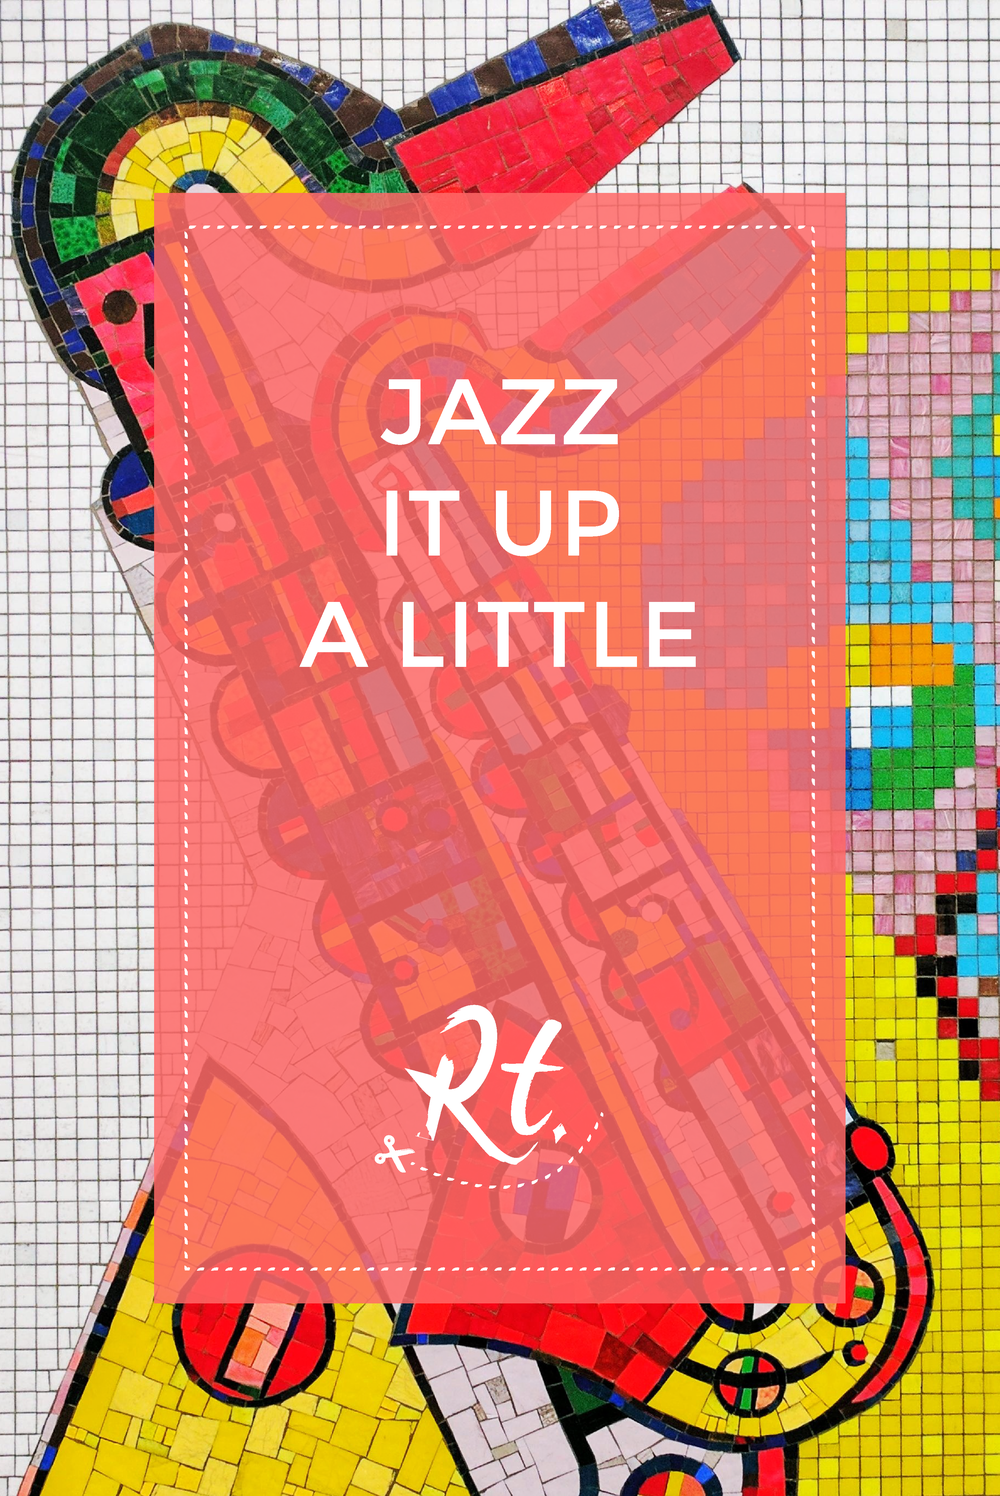 Jazz It Up A Little by Rosh Thanki, Eduardo Paolozzi saxophone tiles at Tottenham Court Road station